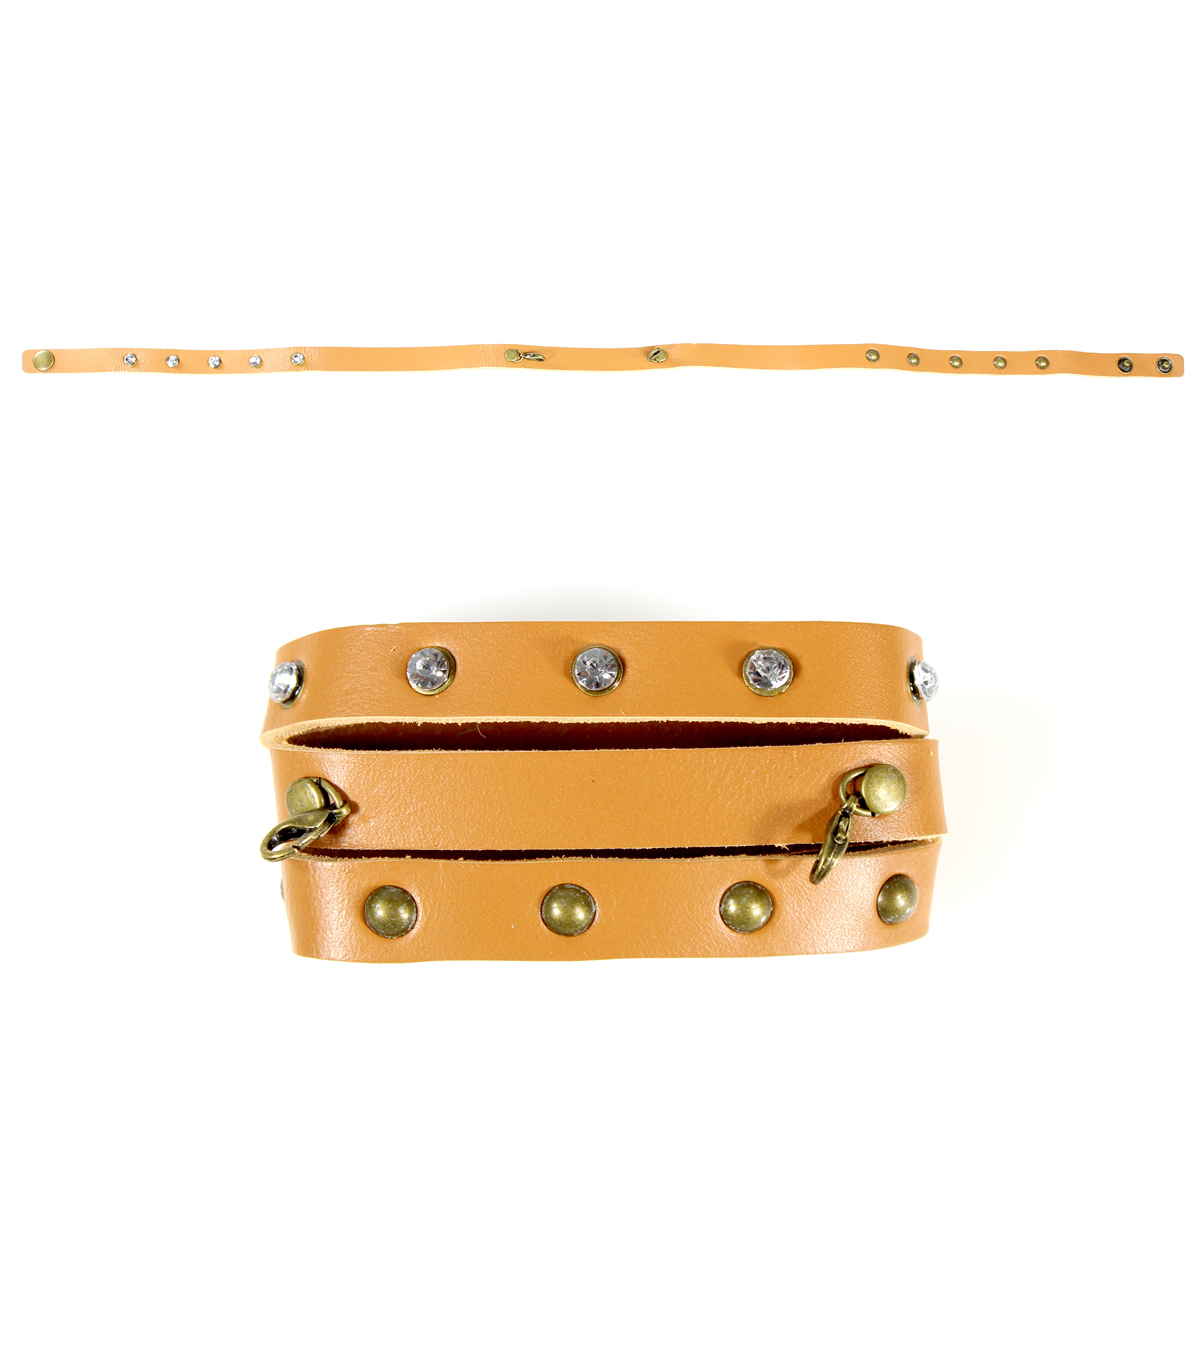 Blue Moon Beads \u0022Bespoken\u0022 22 inches Leather Wrap, Tan with Studs